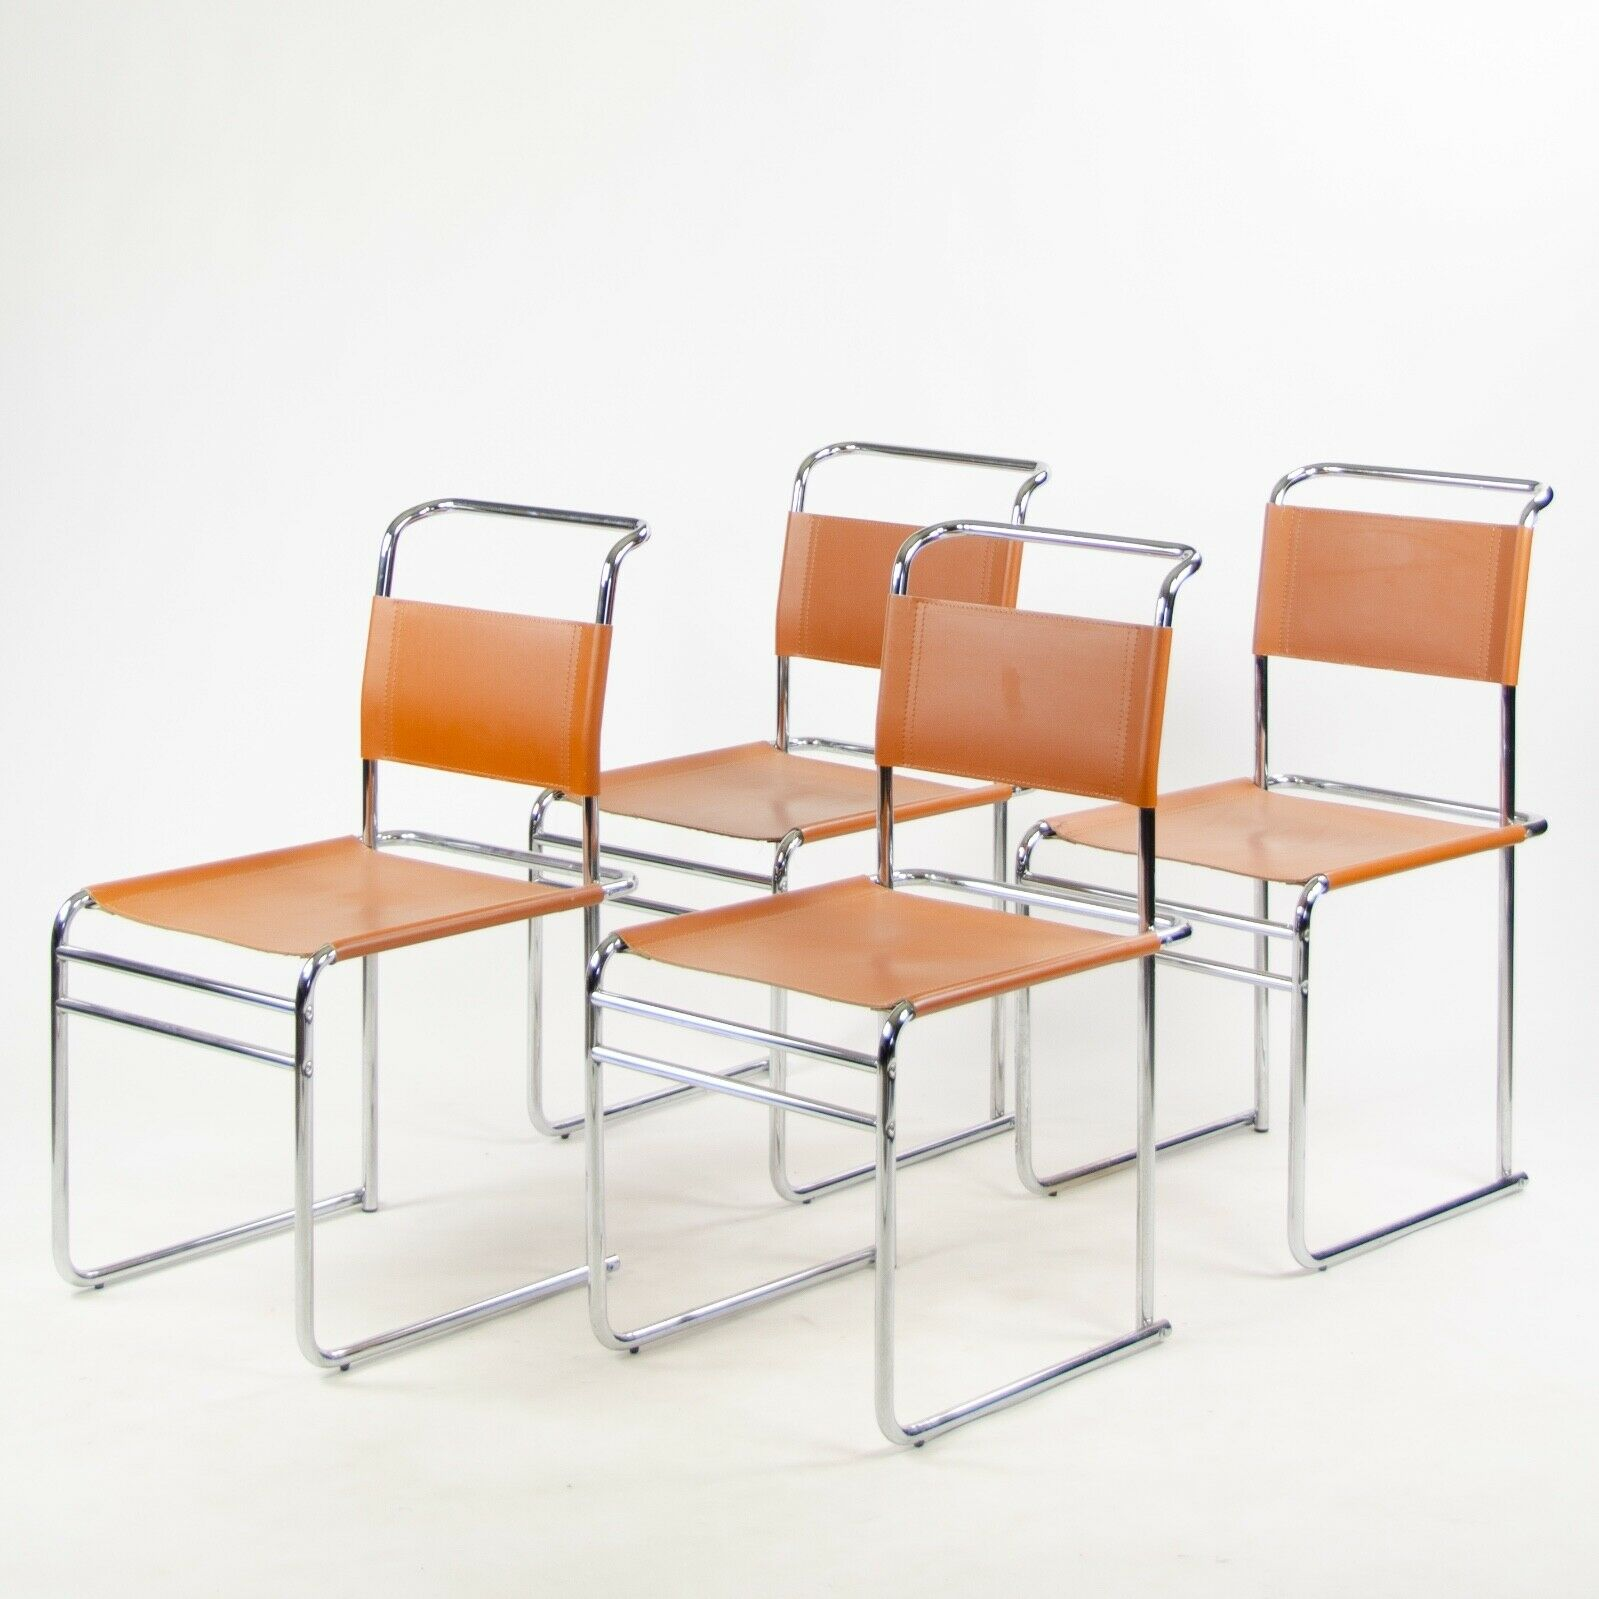 Terrific Details About Set Of 4 Marcel Breuer B5 Dining Chairs Chrome Leather Bauhaus Tecta Thonet Pdpeps Interior Chair Design Pdpepsorg